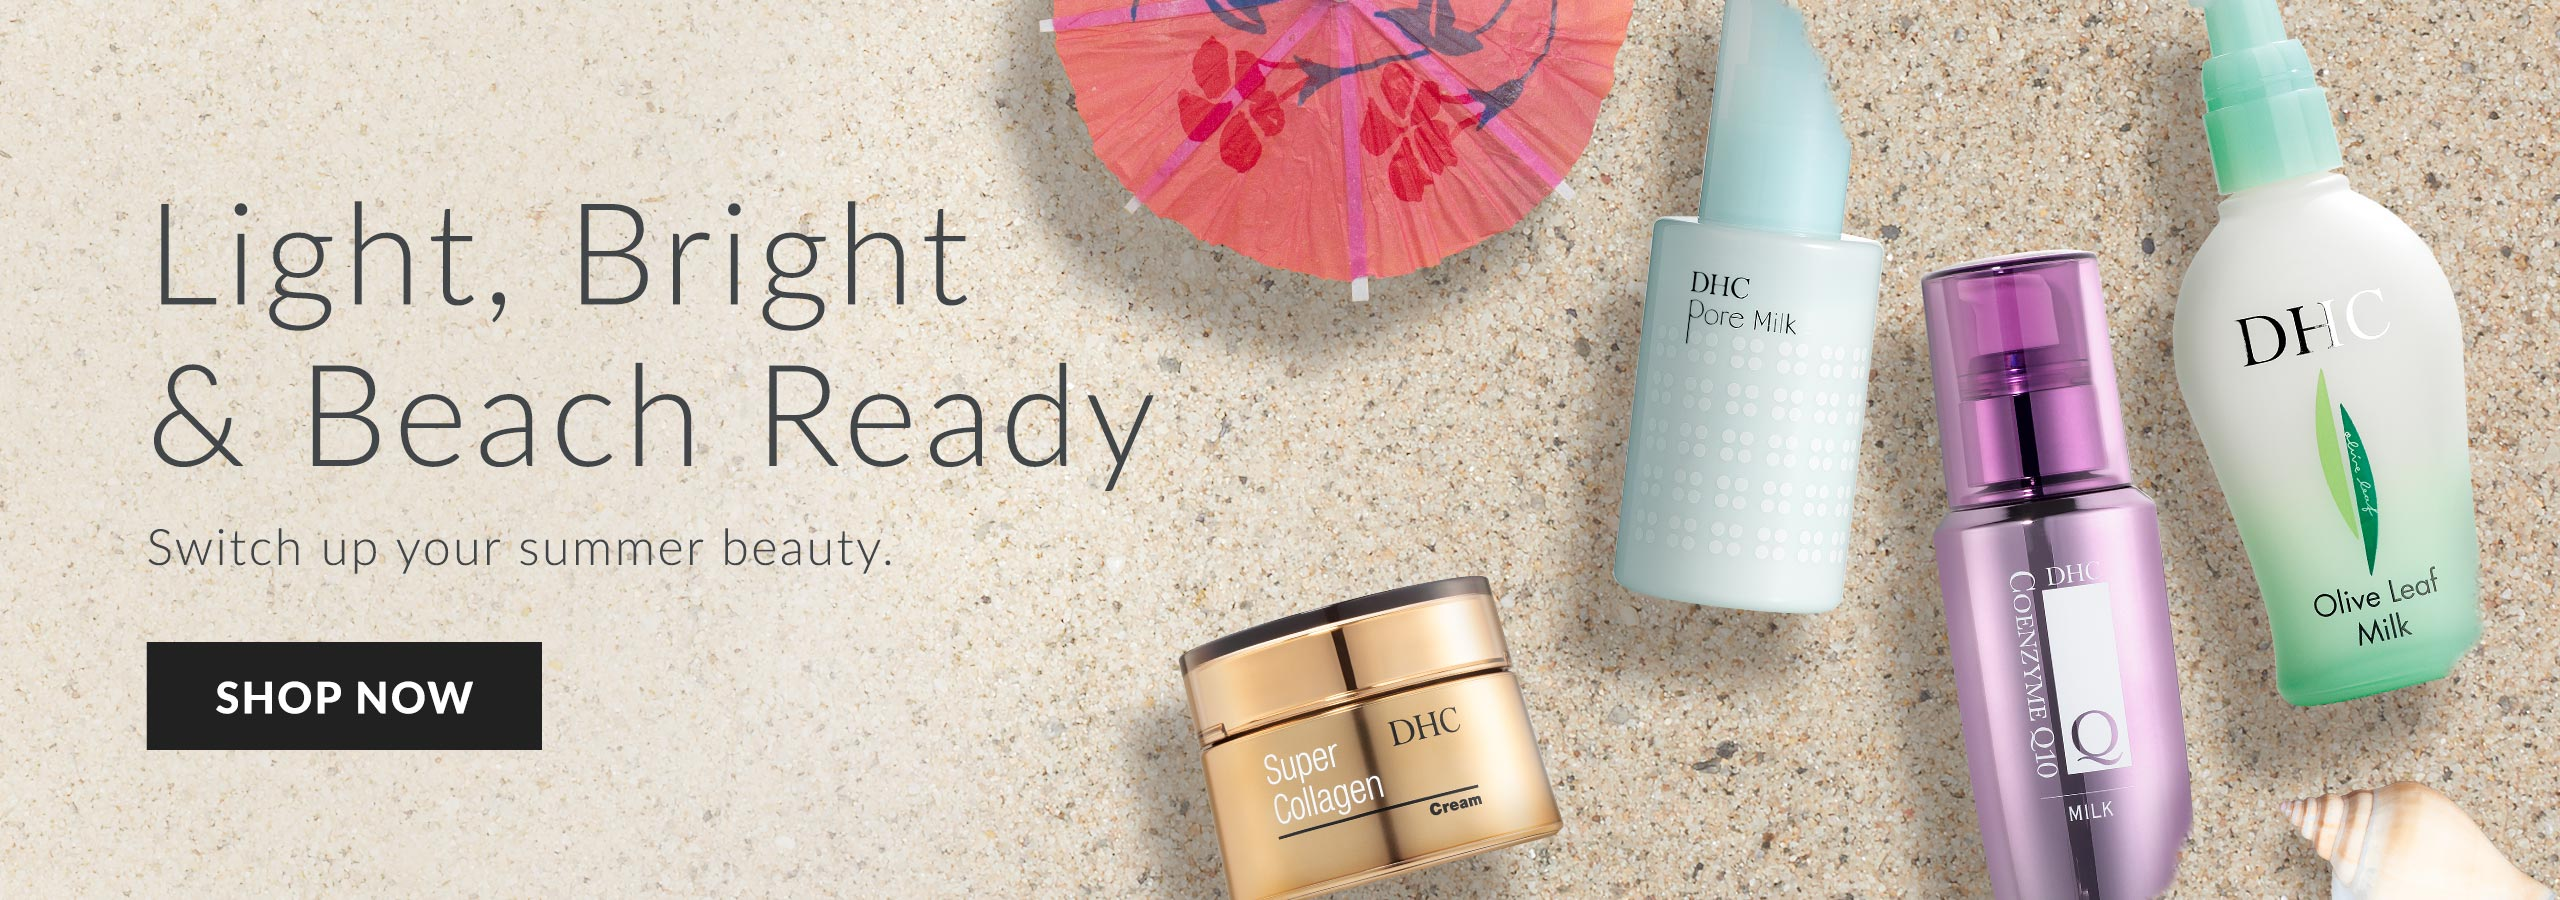 Light, Bright and Beach Ready. Switch up your summer beauty. Shop now.